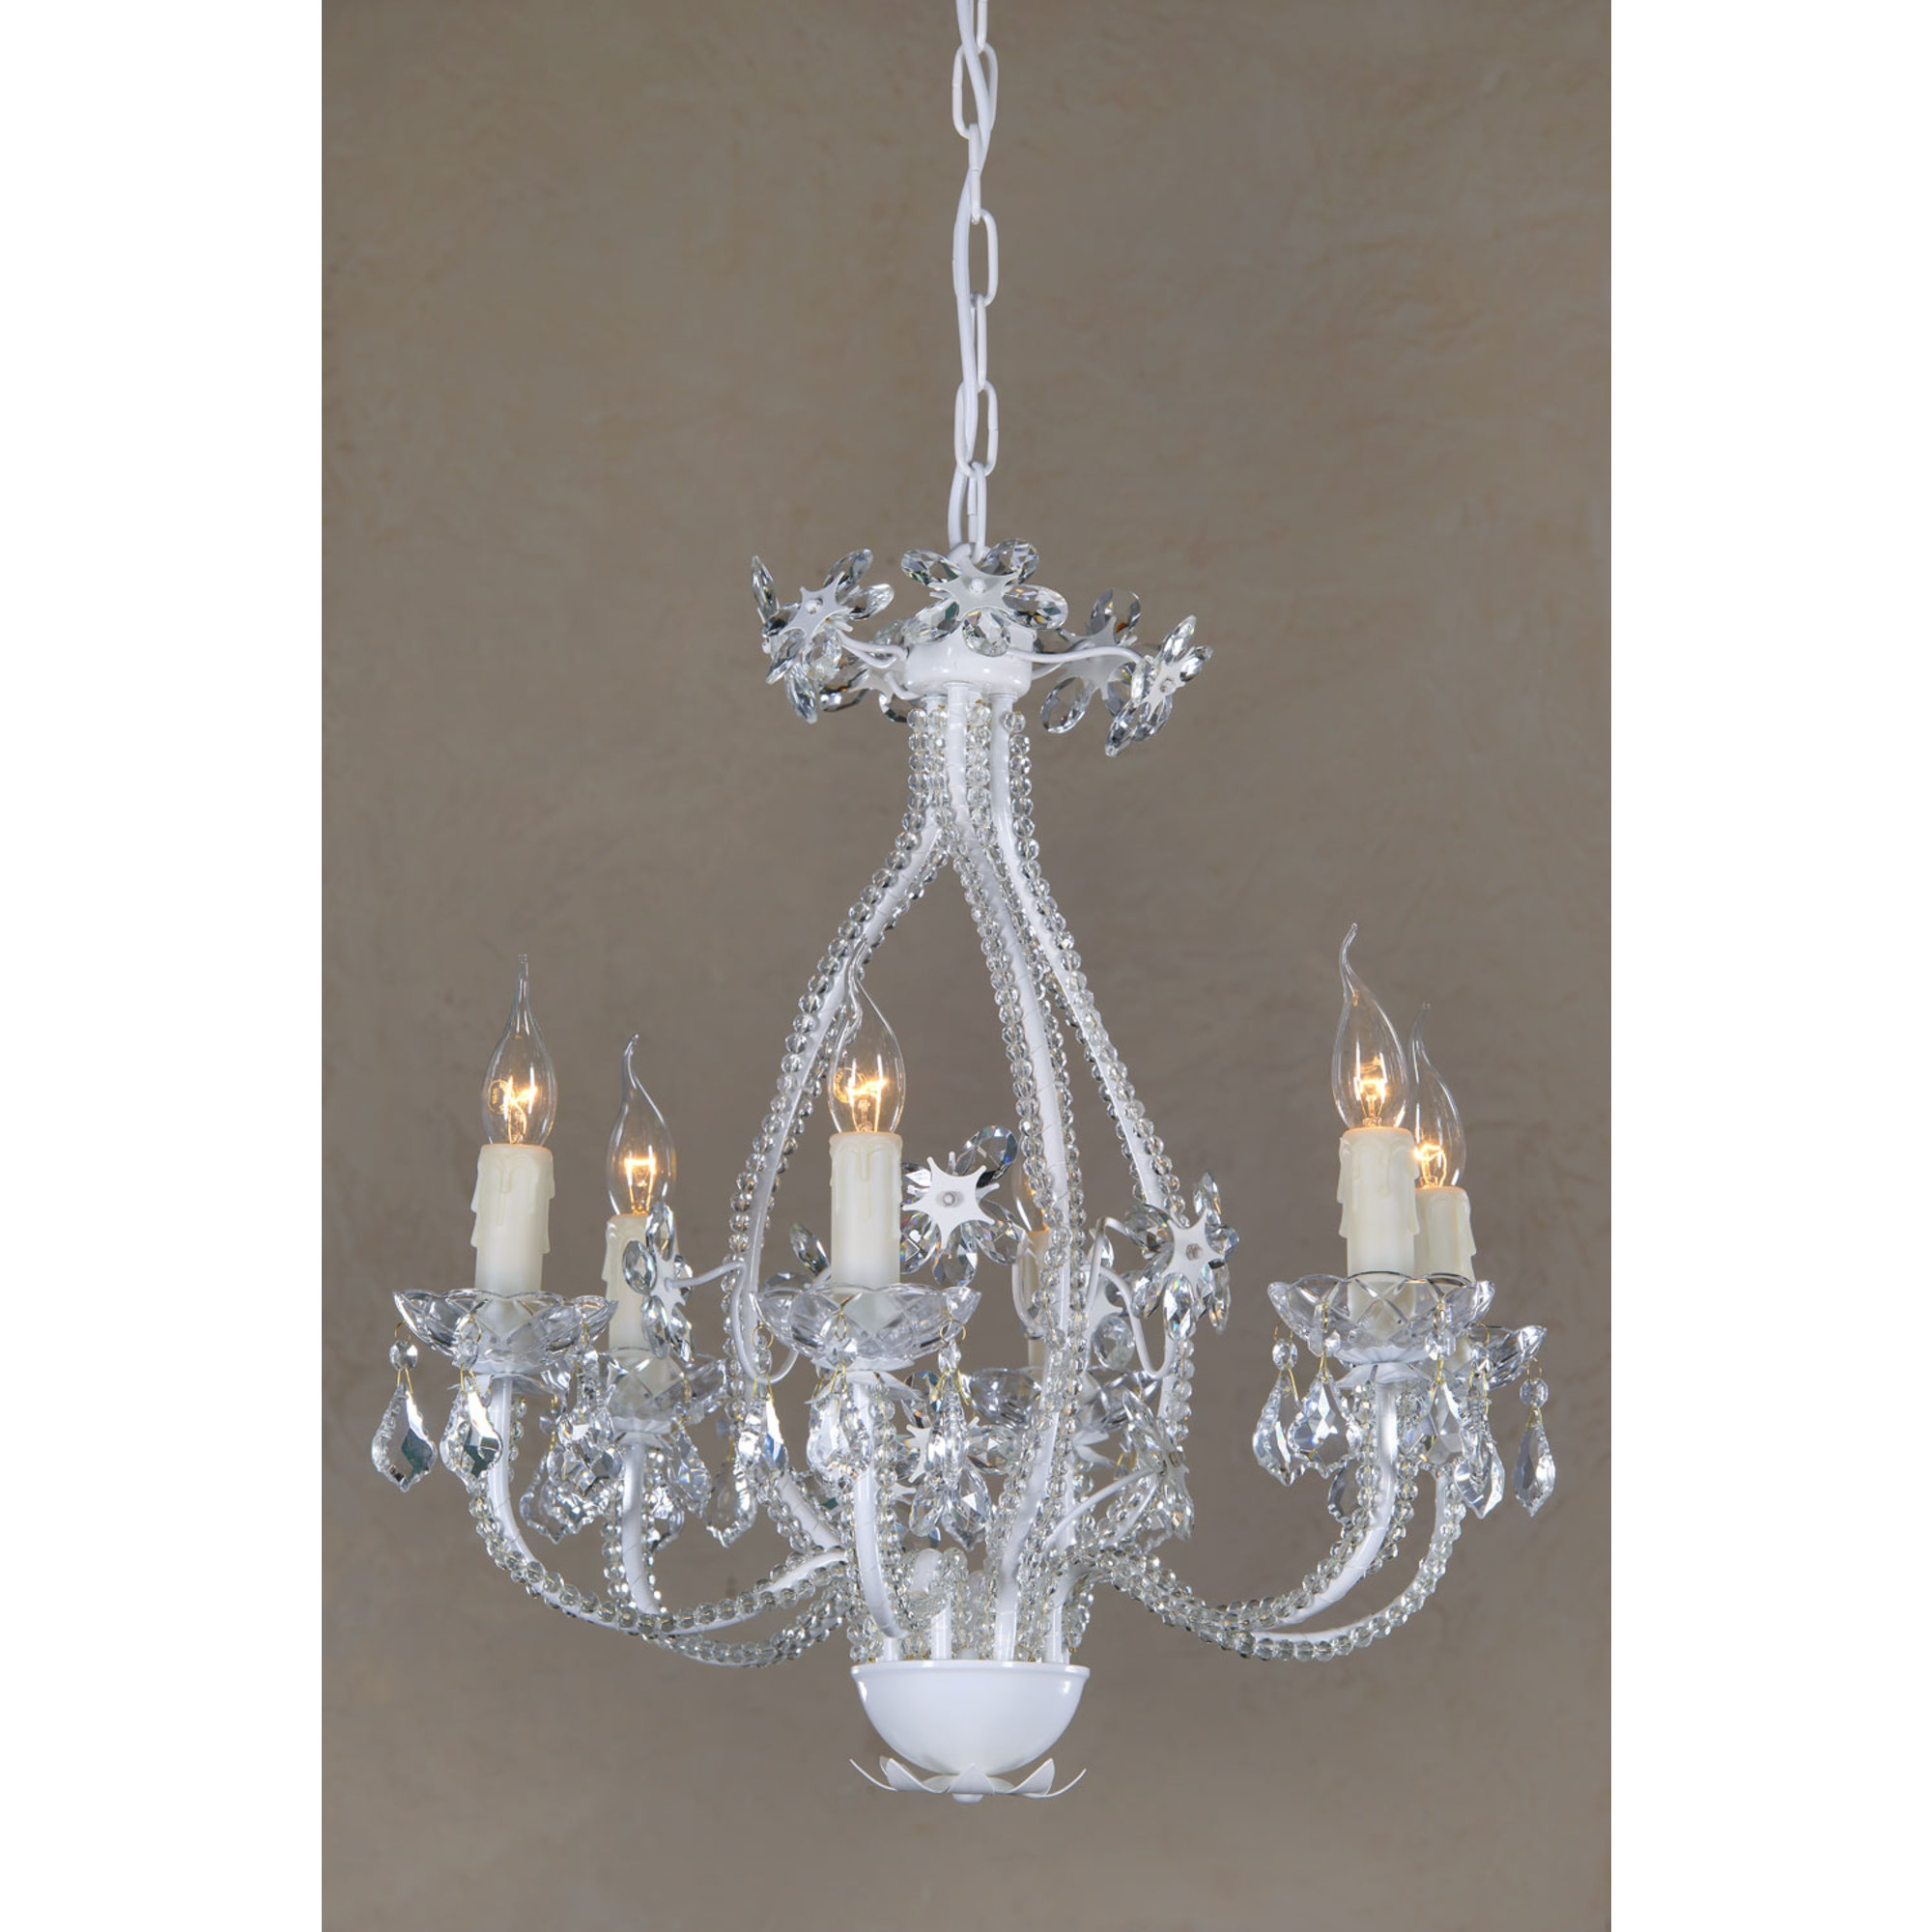 6 Light Chandelier - White Enamel and Clear